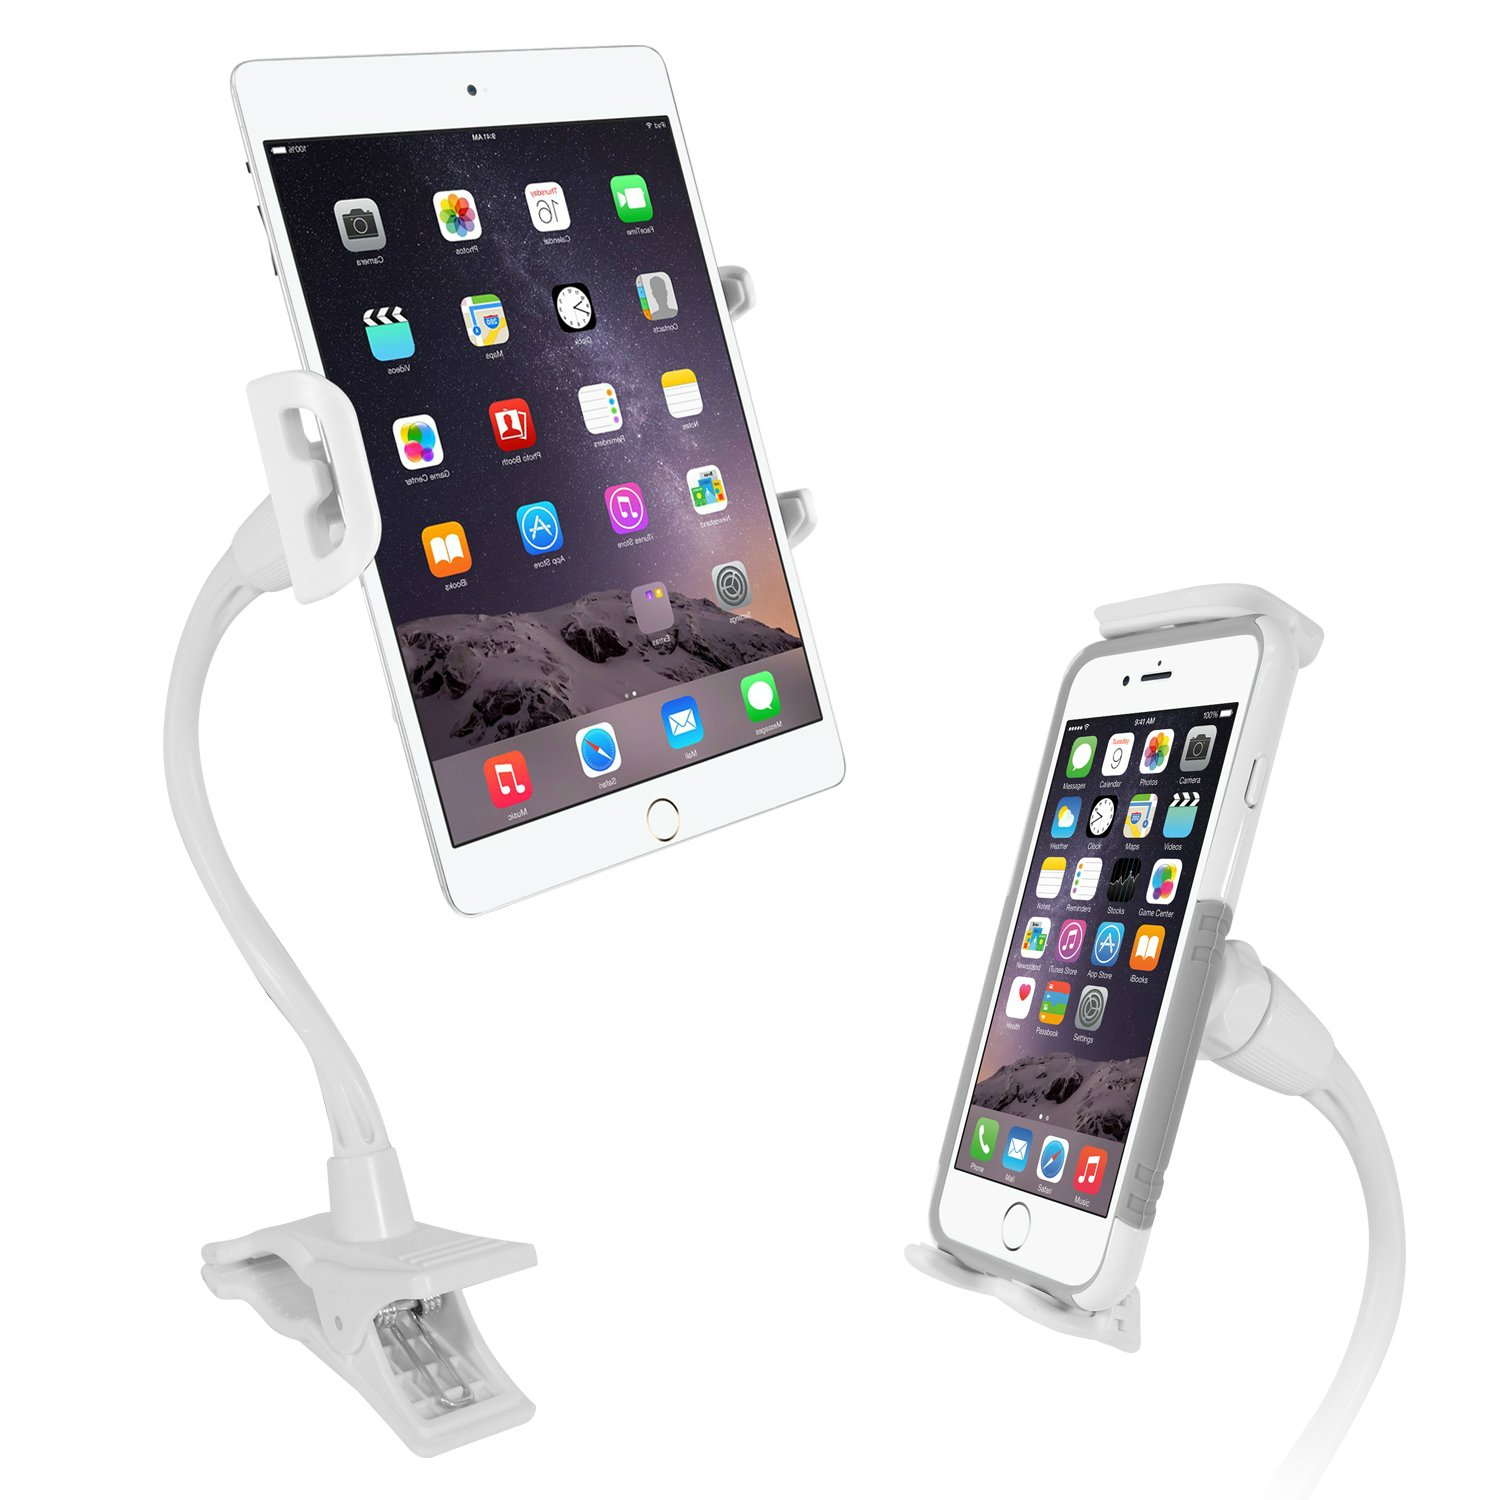 Macally 2-in-1 Tablet Clamp & Cell Phone Clip Mount Holder Stand with a Lazy Flexible Gooseneck for the Bed Desk or Kitchen Table- Works with the iPad Pro 10.5/9.7 Air Mini Kindle Samsung iPhone etc.